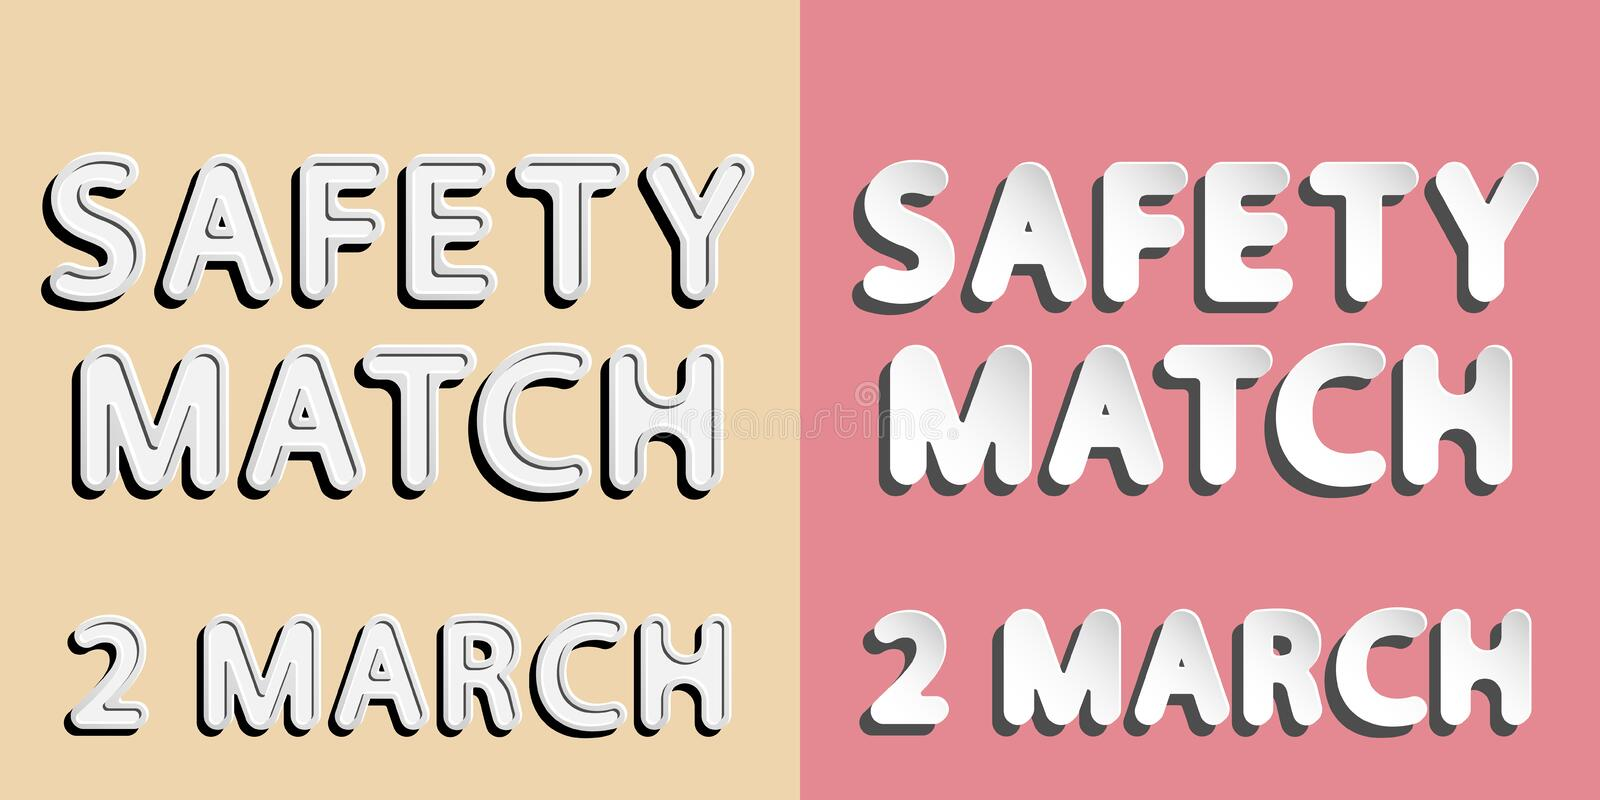 Safety match 2 march royalty free illustration